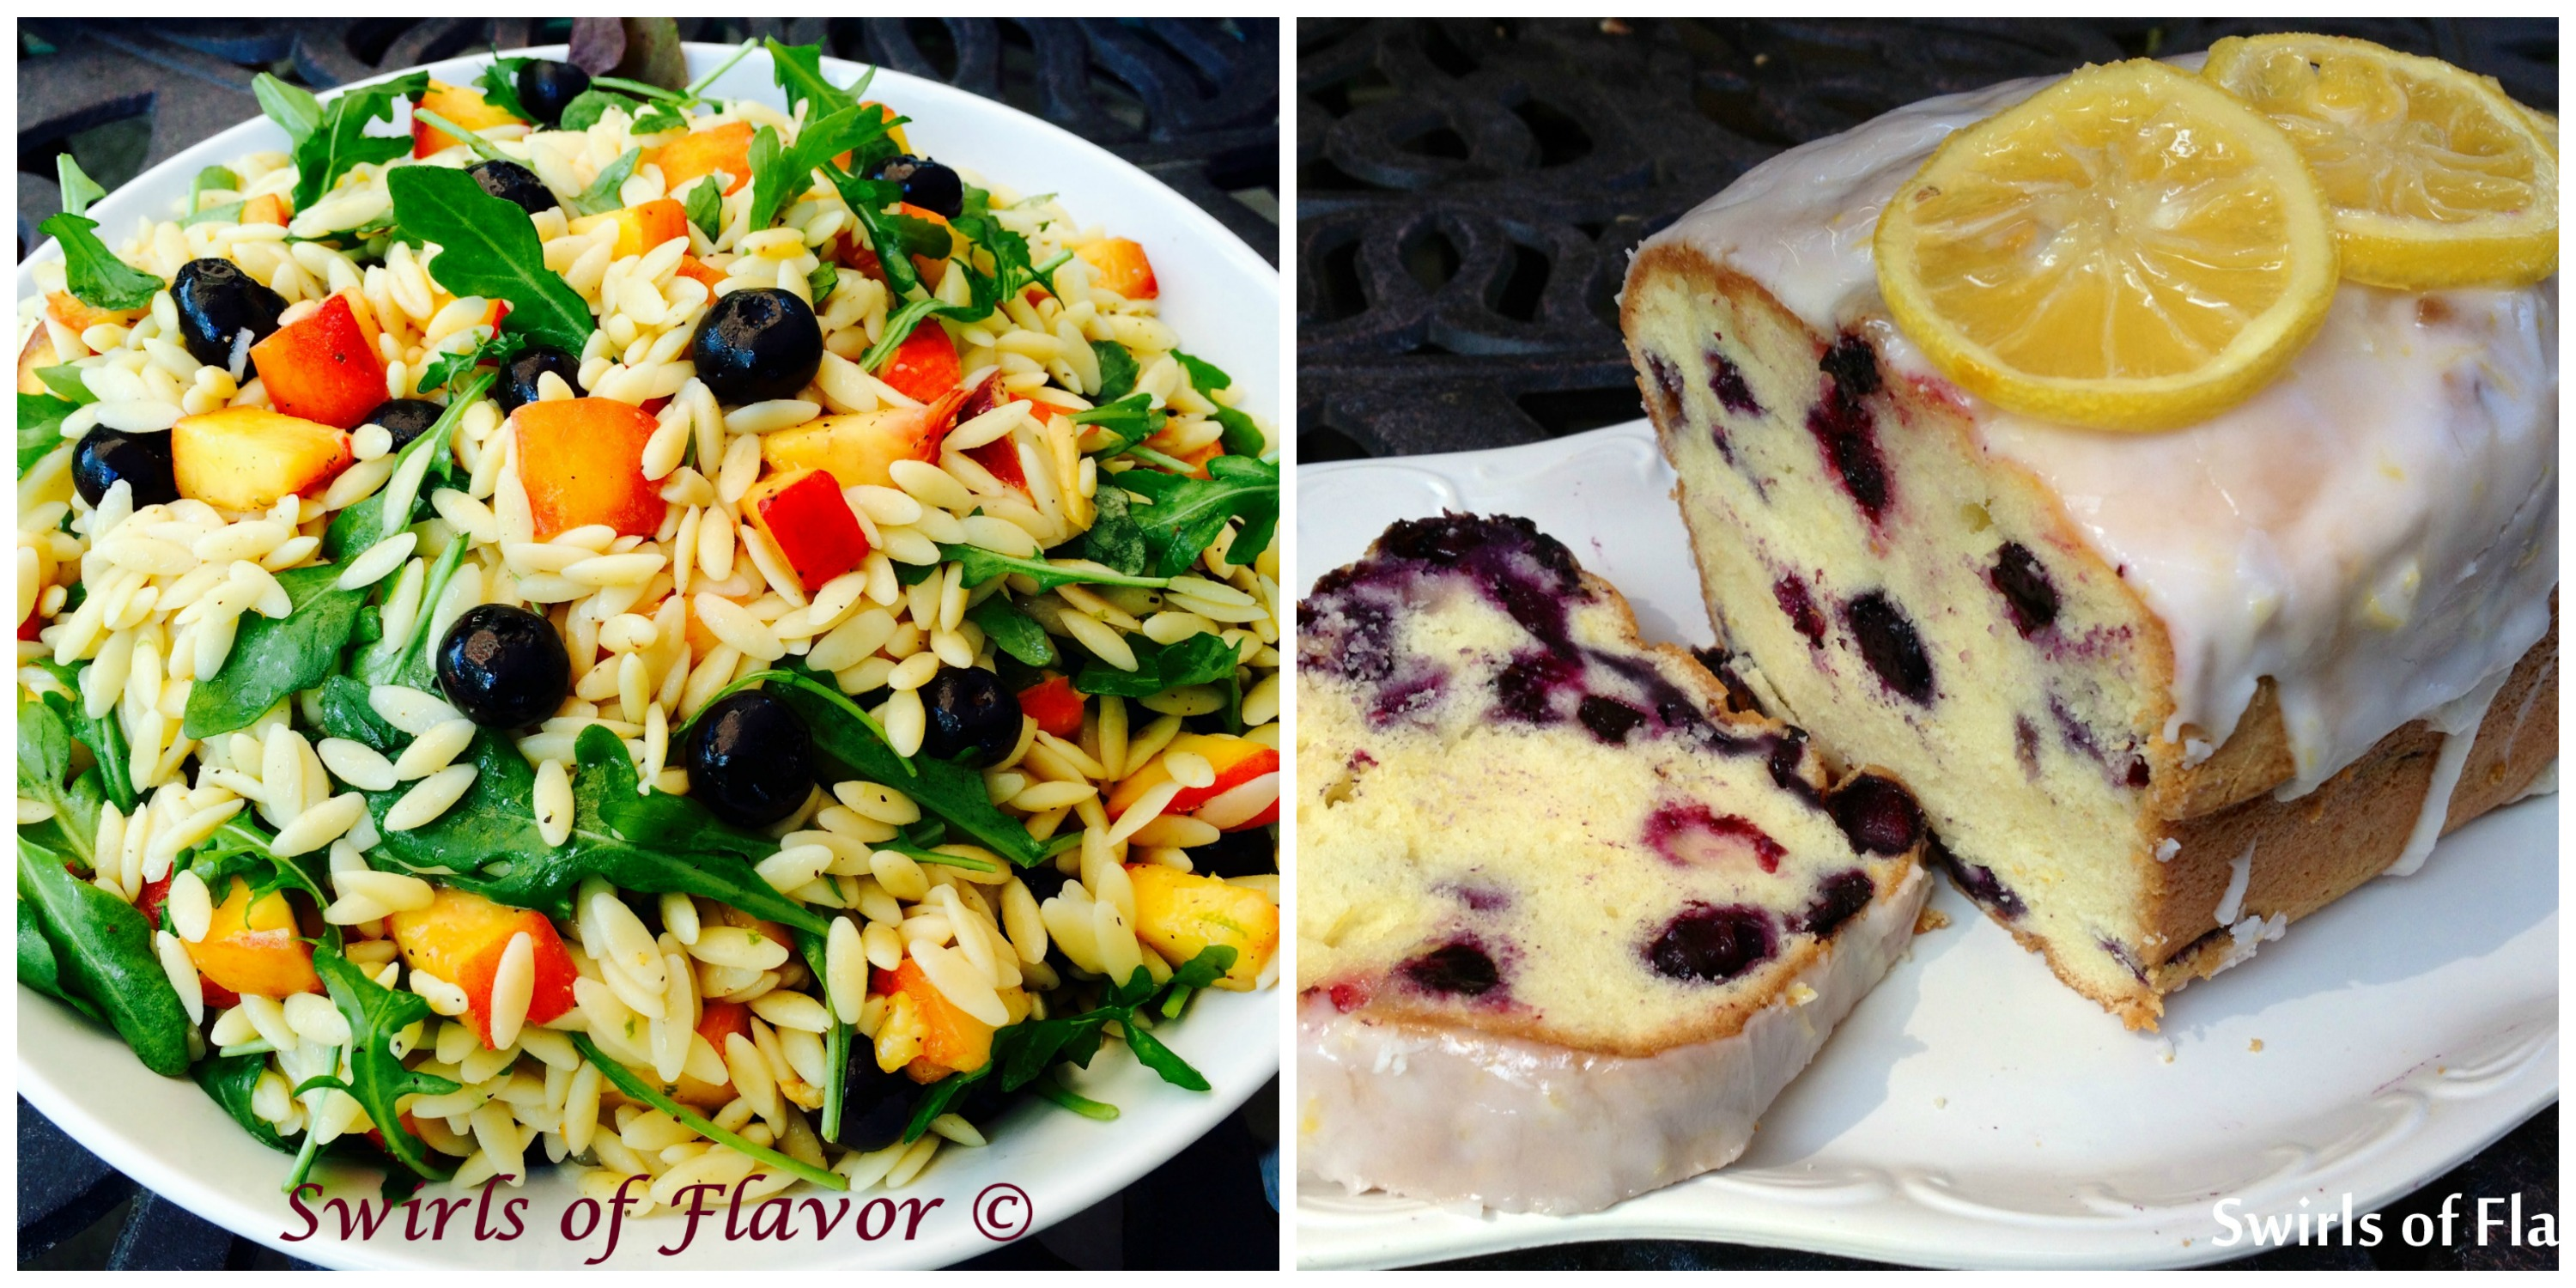 Blueberry Peach Orzo and Meyer Lemon Blueberry Loaf Cake